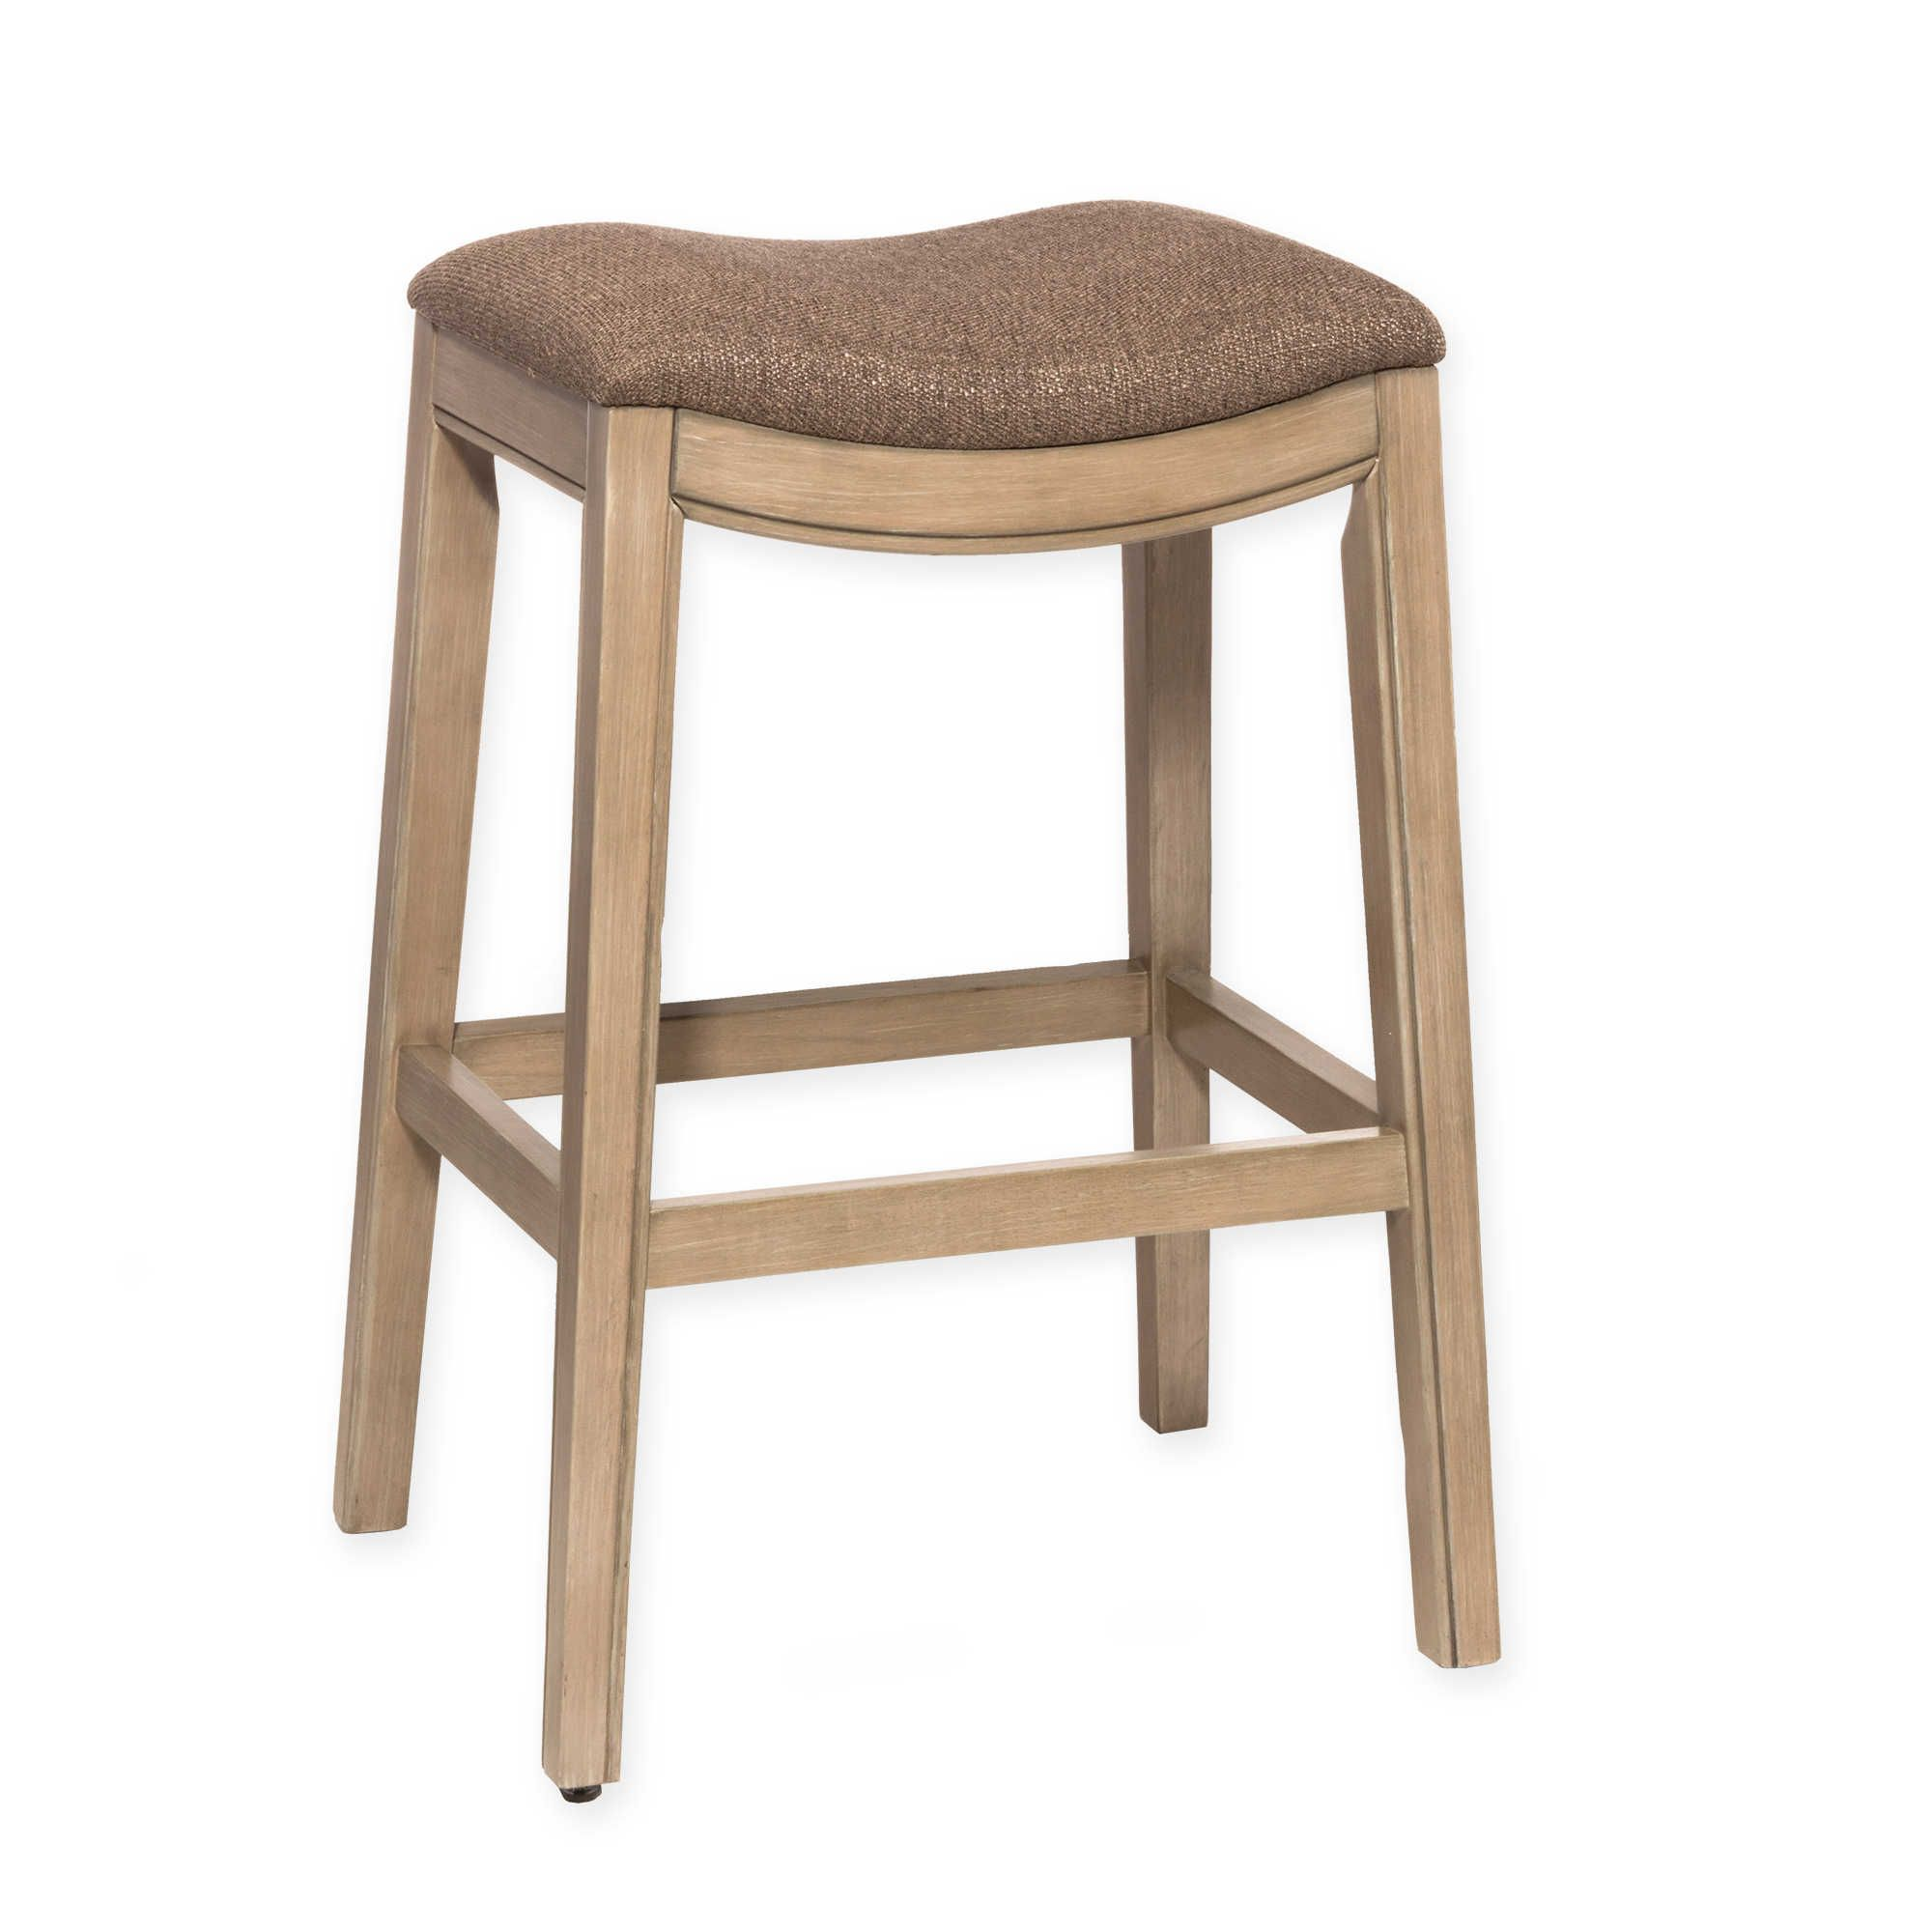 Kenton 26 Inch Backless Counter Stool In Grey For New Counter In Kitchen Backless Bar Stools Hillsdale Furniture Counter Stools Backless